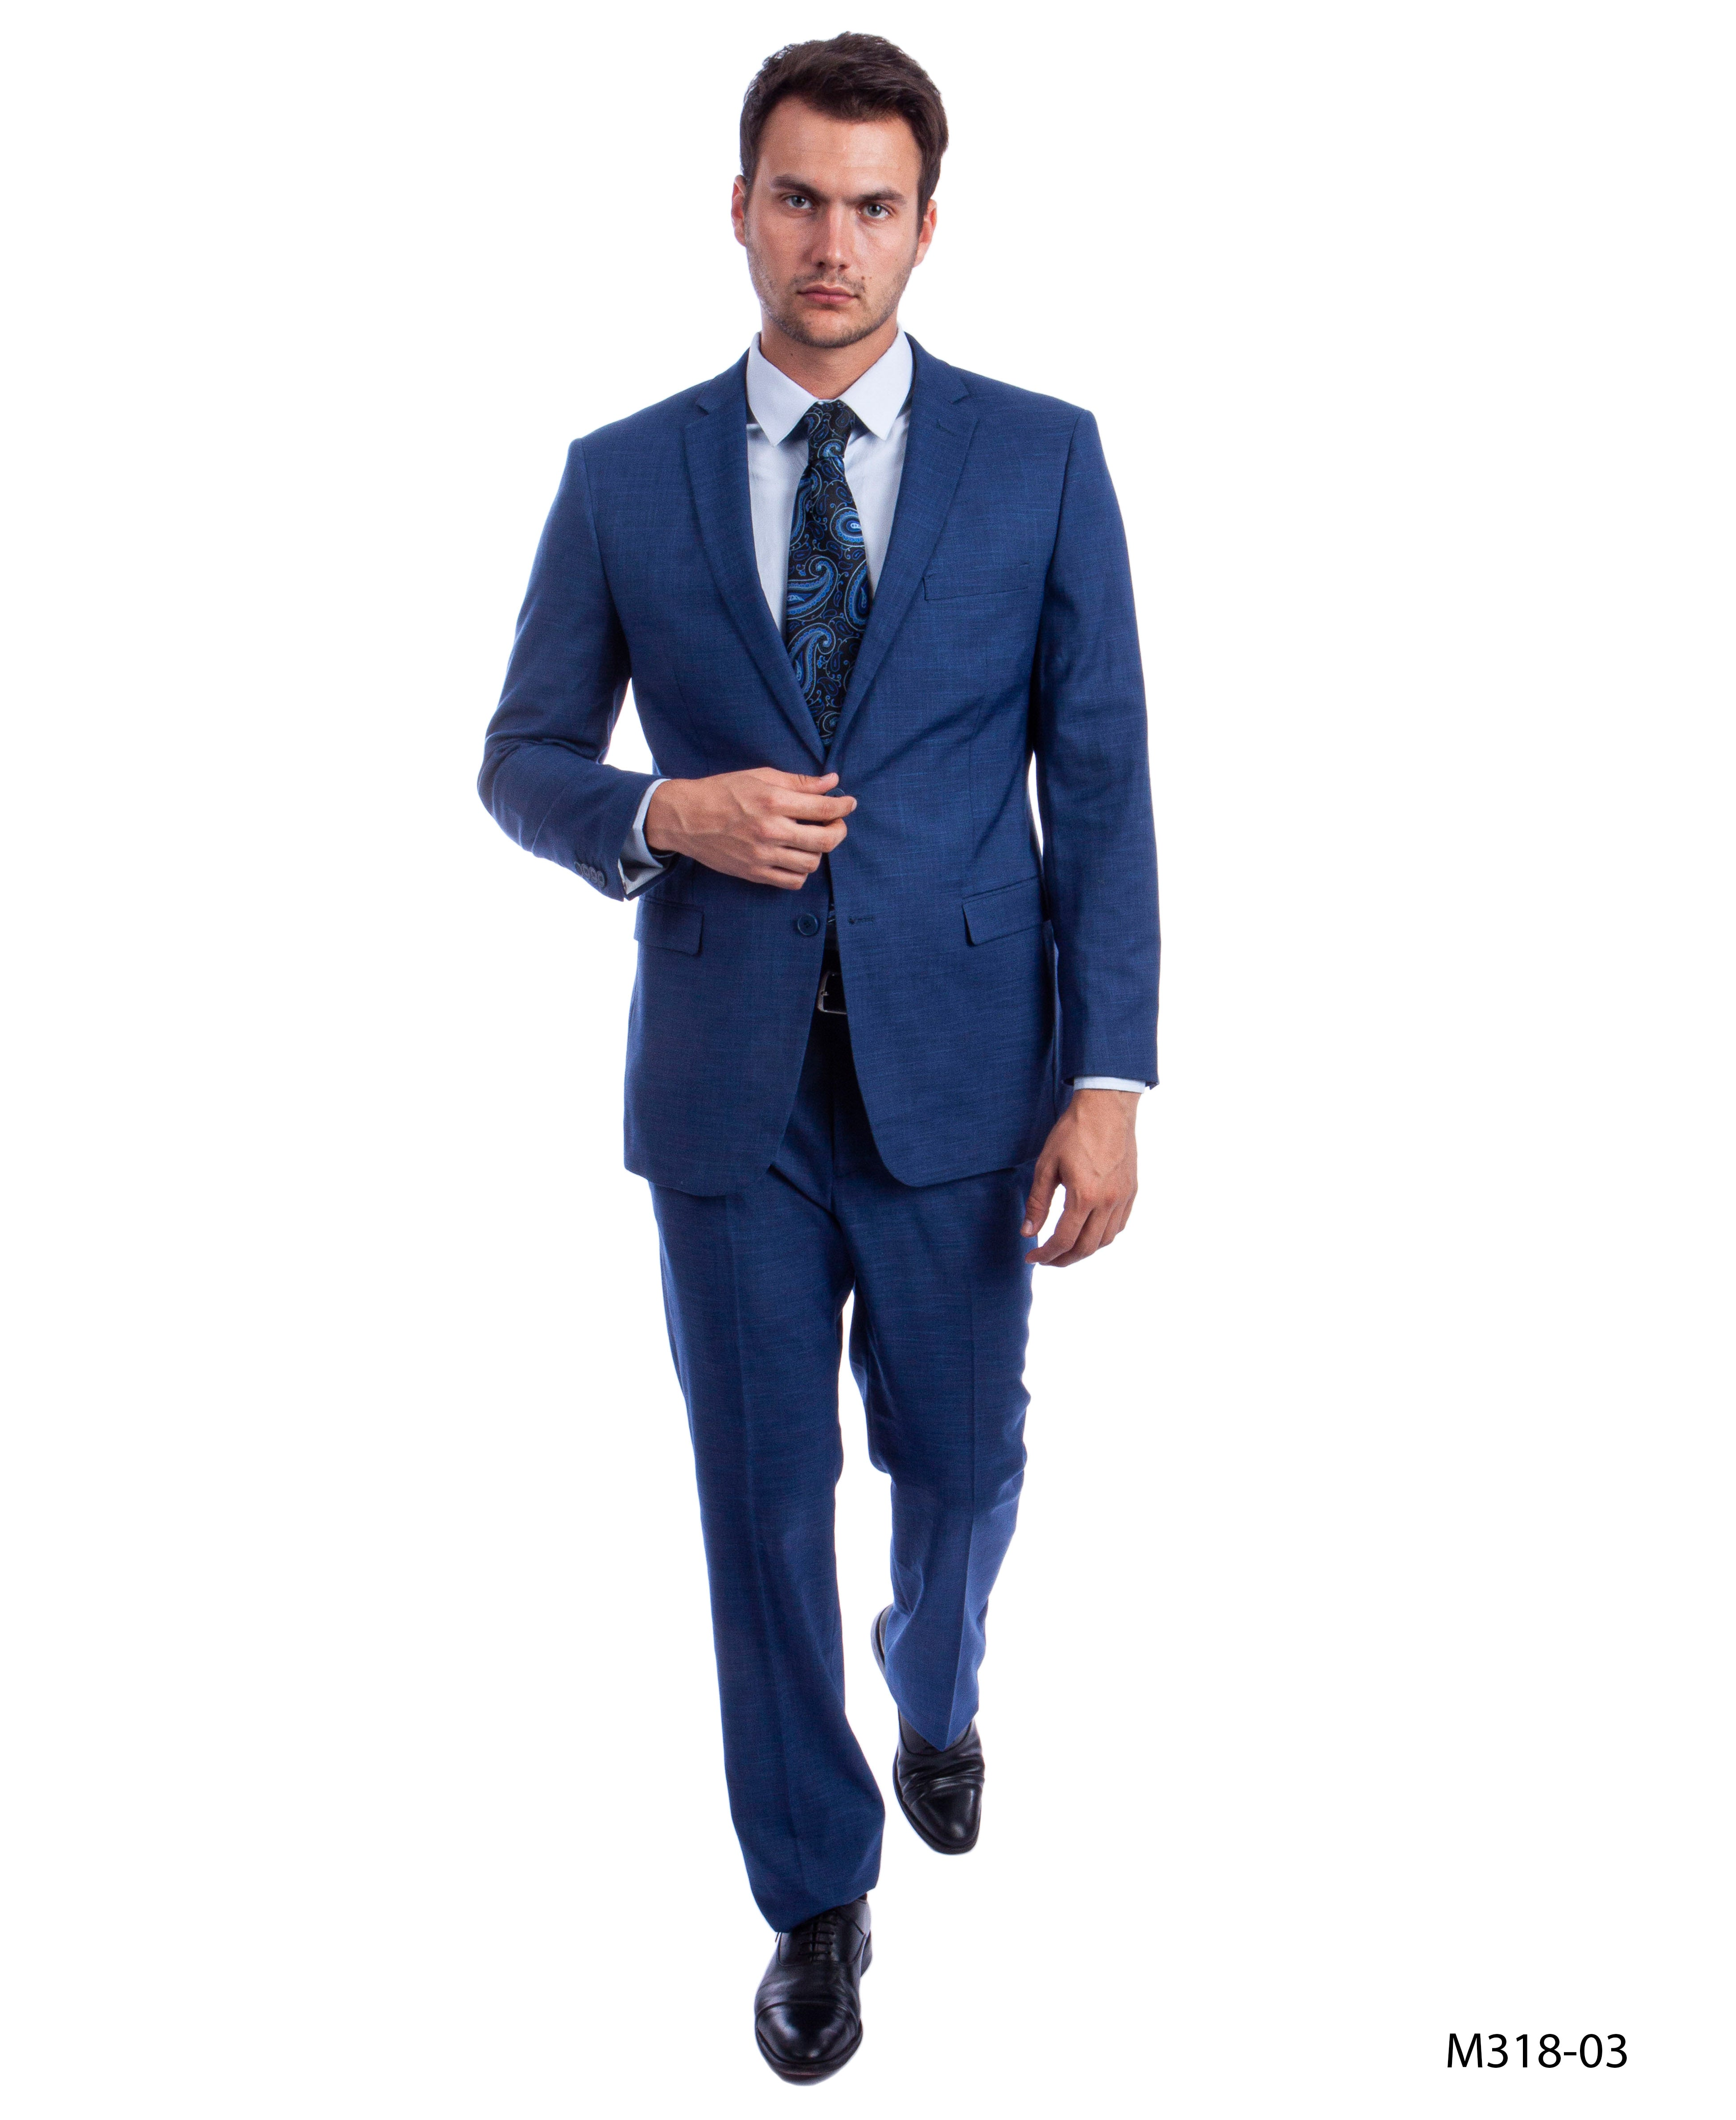 Med Blue Suit For Men Formal Suits For All Ocassions